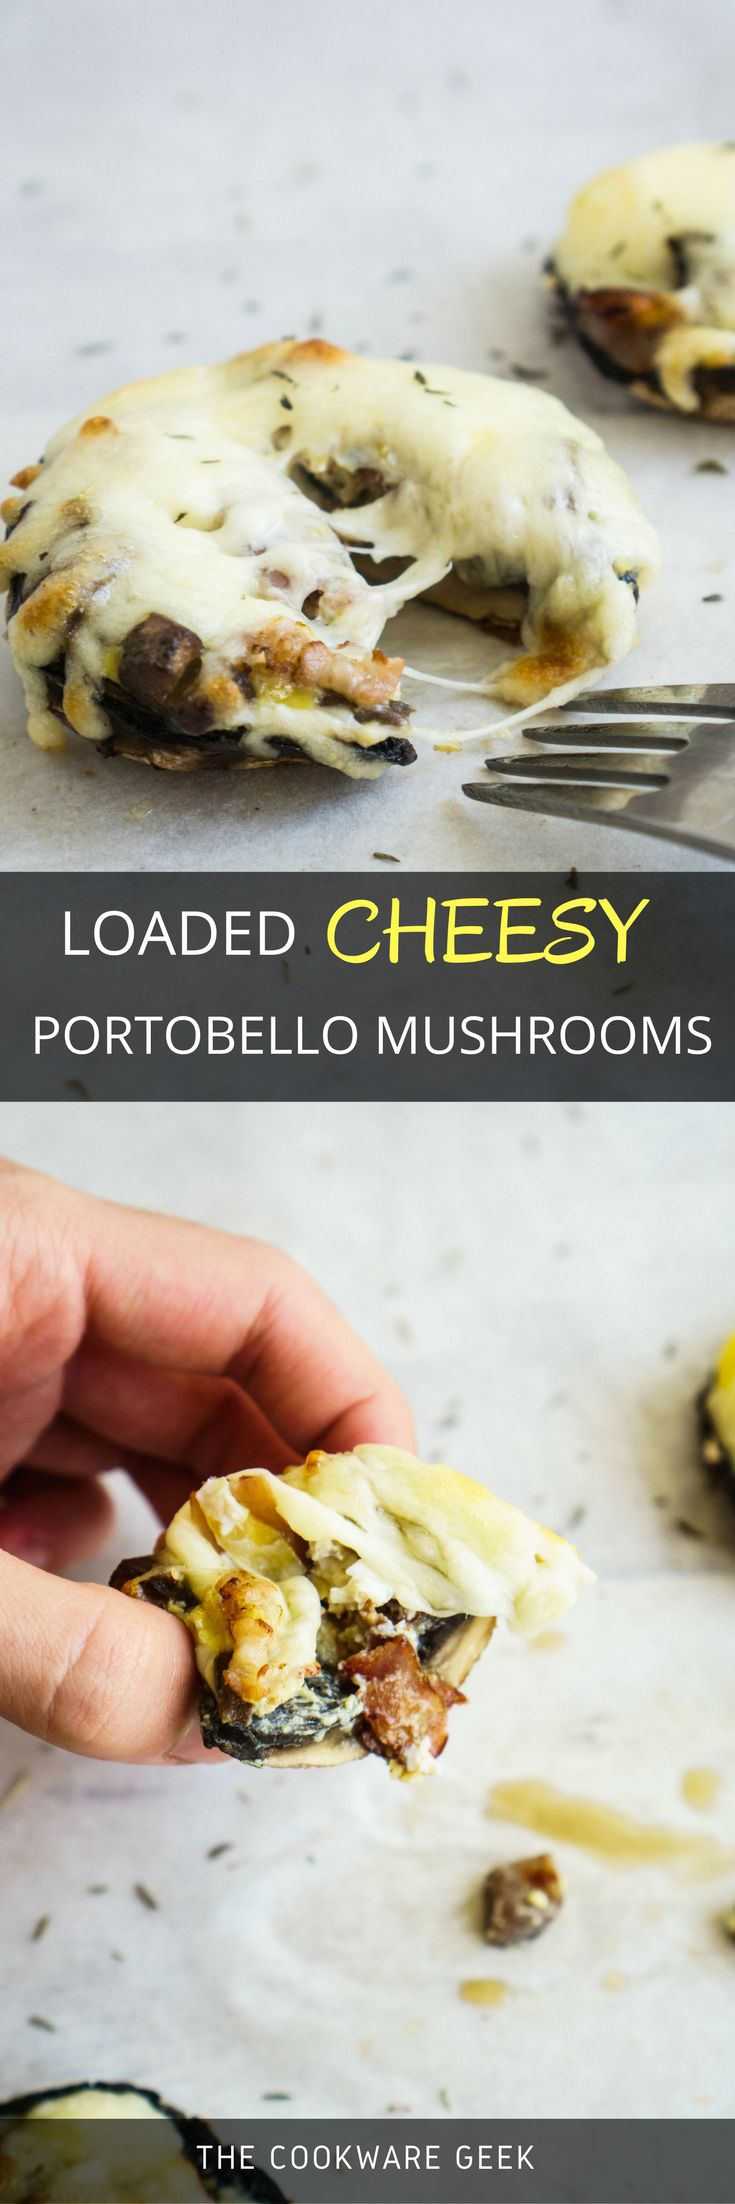 These loaded cheesy portobello mushrooms are out of this world! Lots of   mozzarella cheese and pieces of crunchy bacon inside these mushrooms.   HEA-VEN-LY!   The Cookware Geek